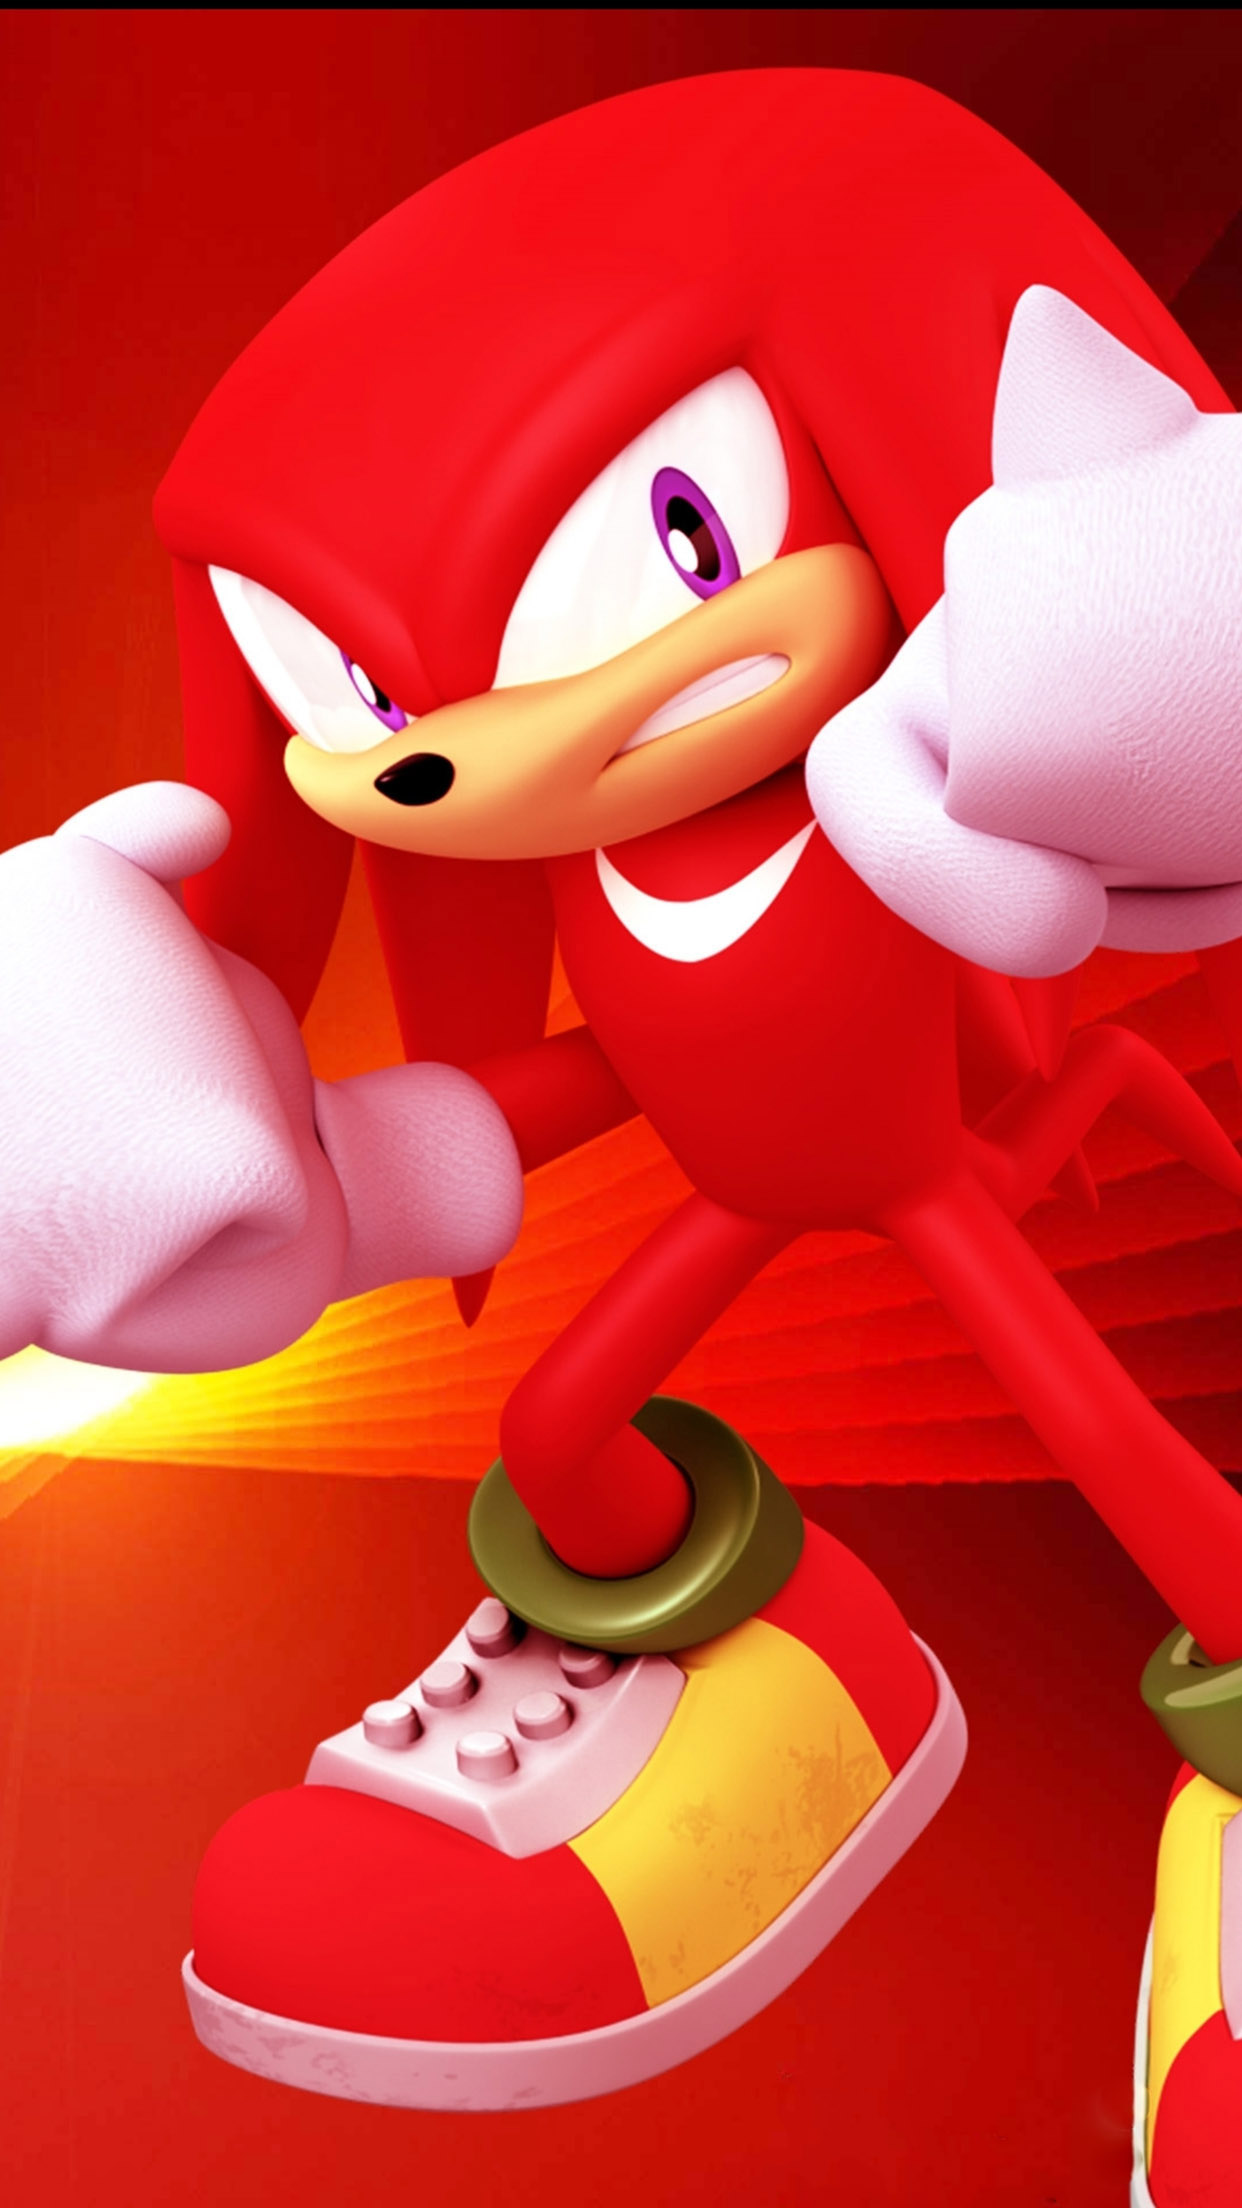 Sonic Sonic 3 3Wallpapers iPhone Parallax Sonic 3